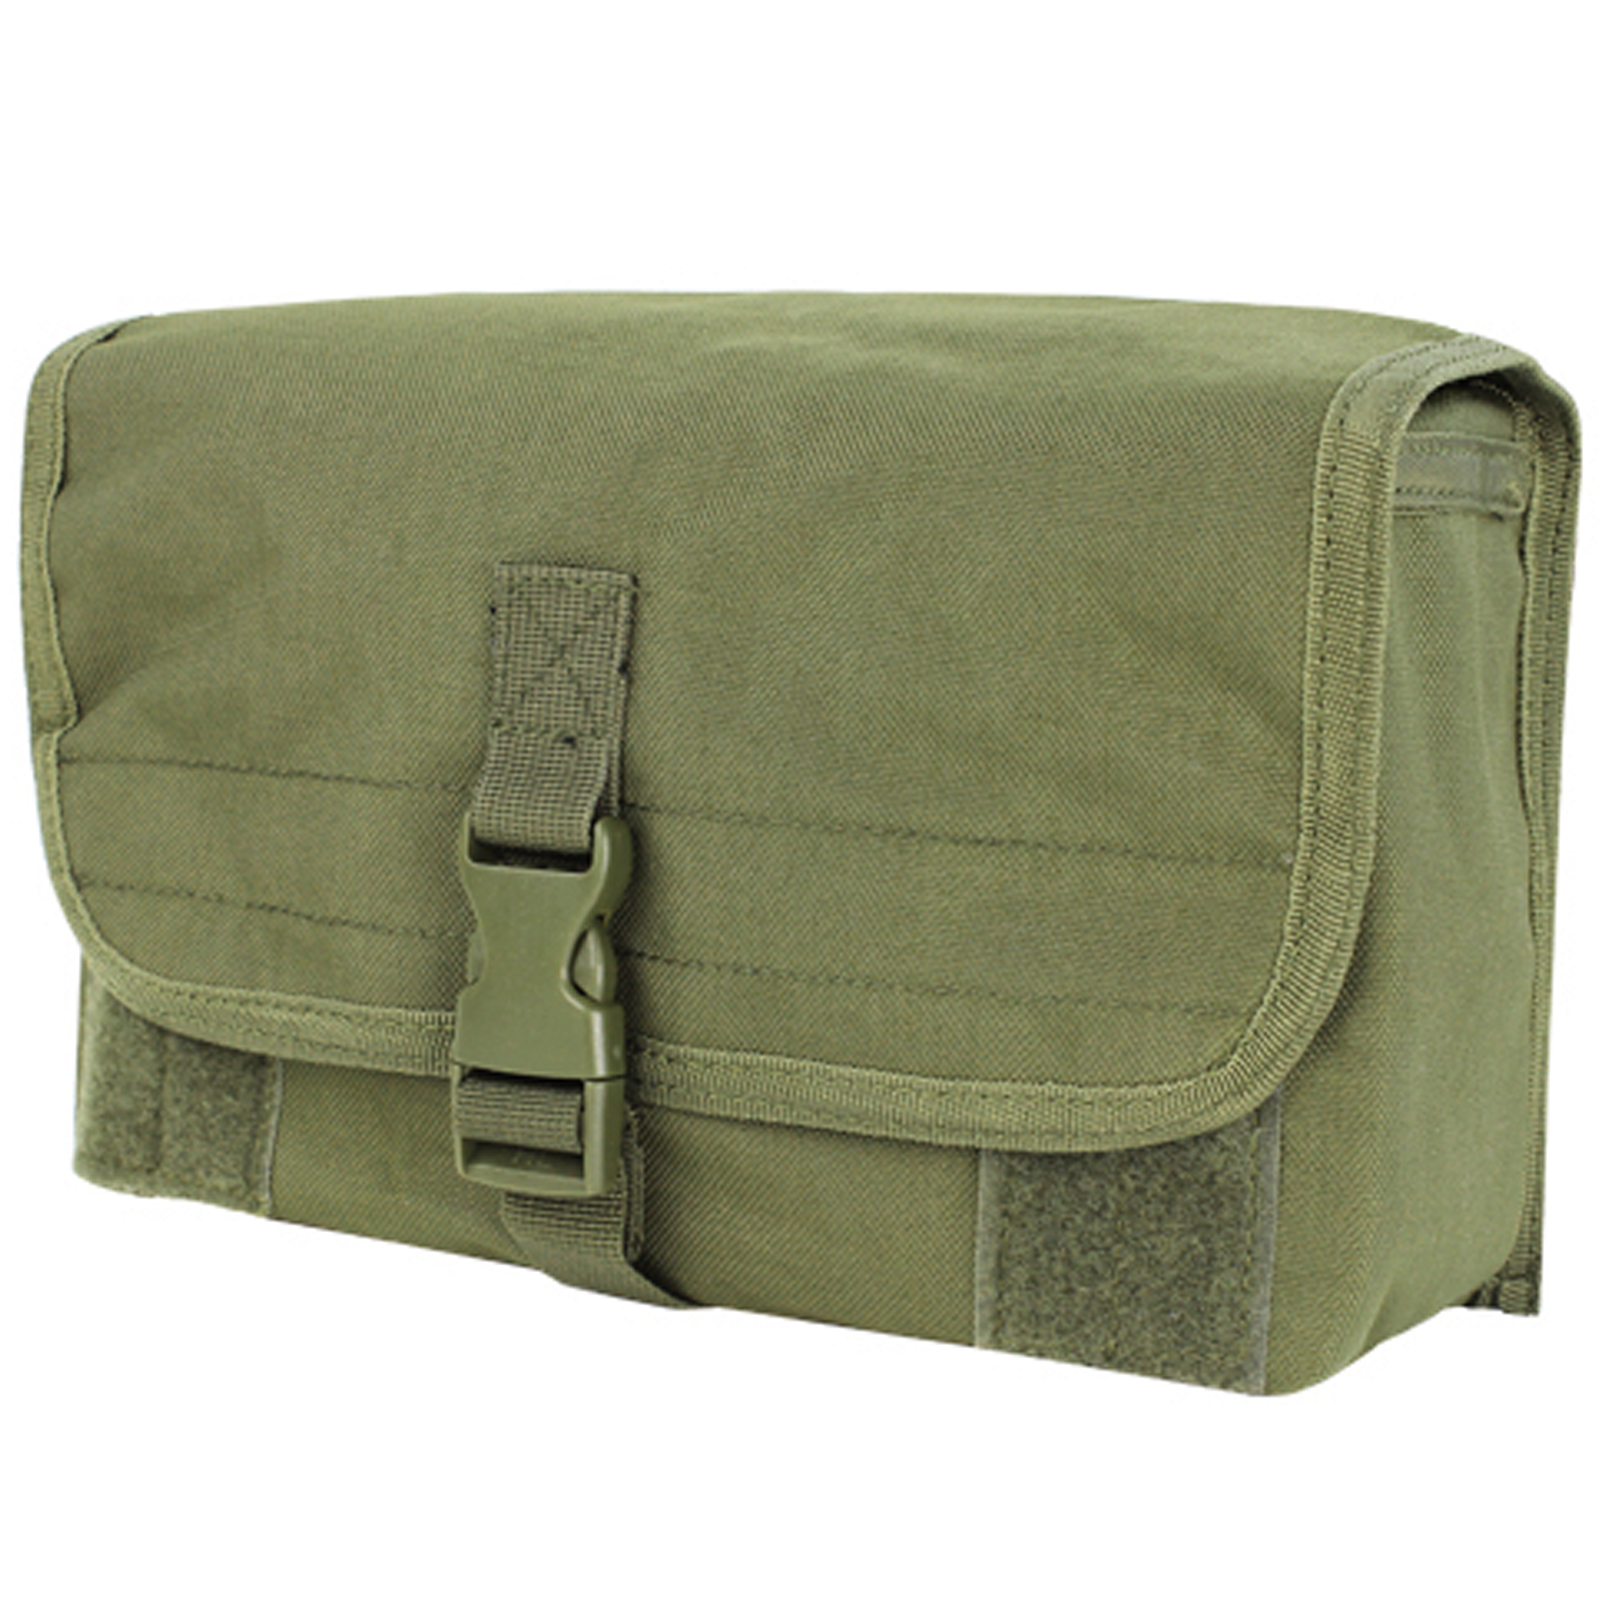 Condor #MA11 MOLLE Gas Mask Pouch OD Green by Condor